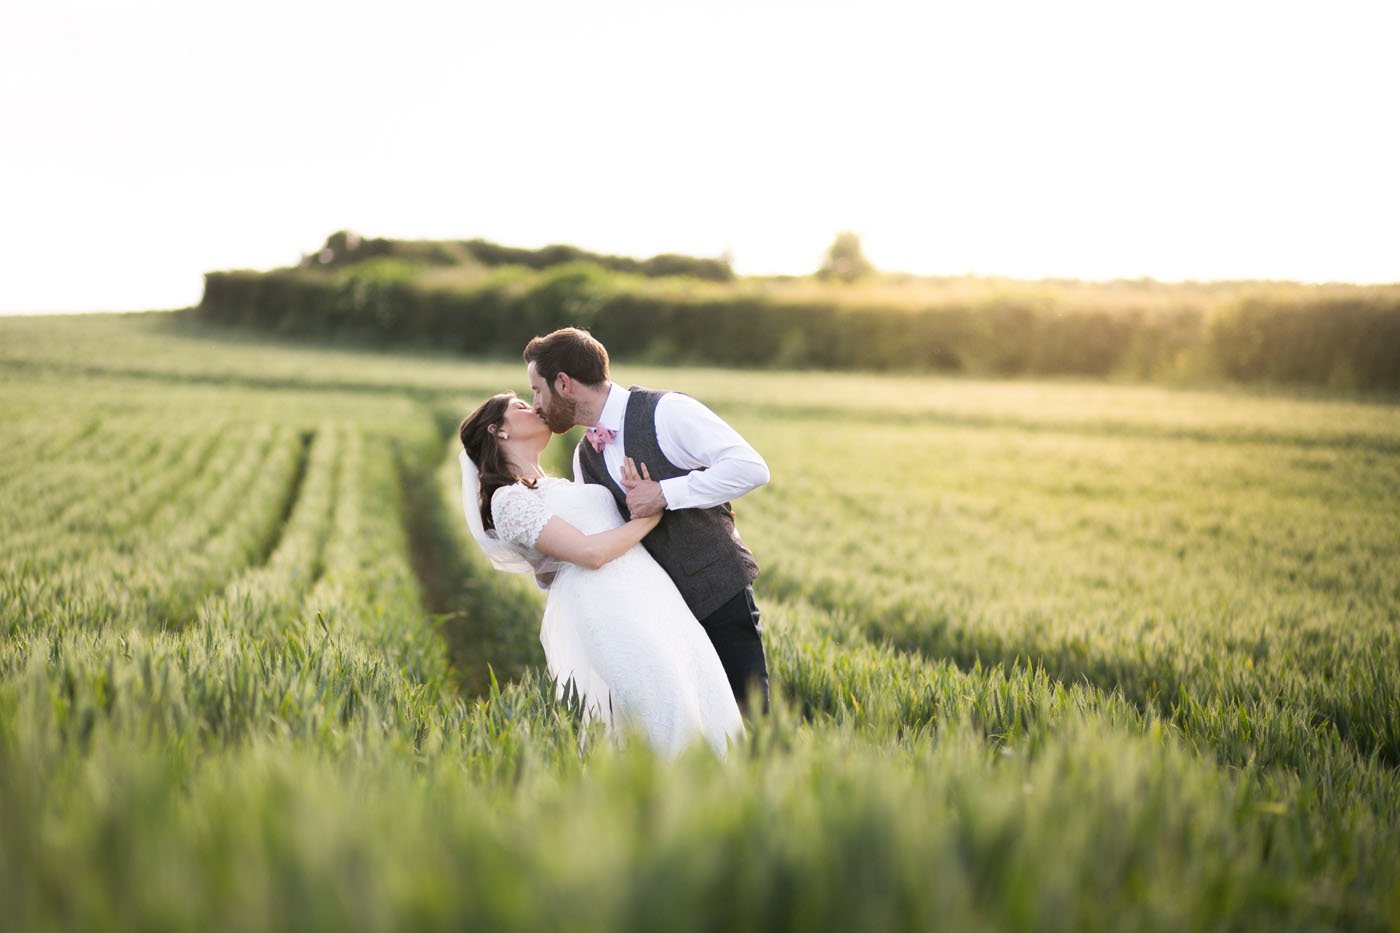 A bride is being lowered for a kiss by her groom in a green field